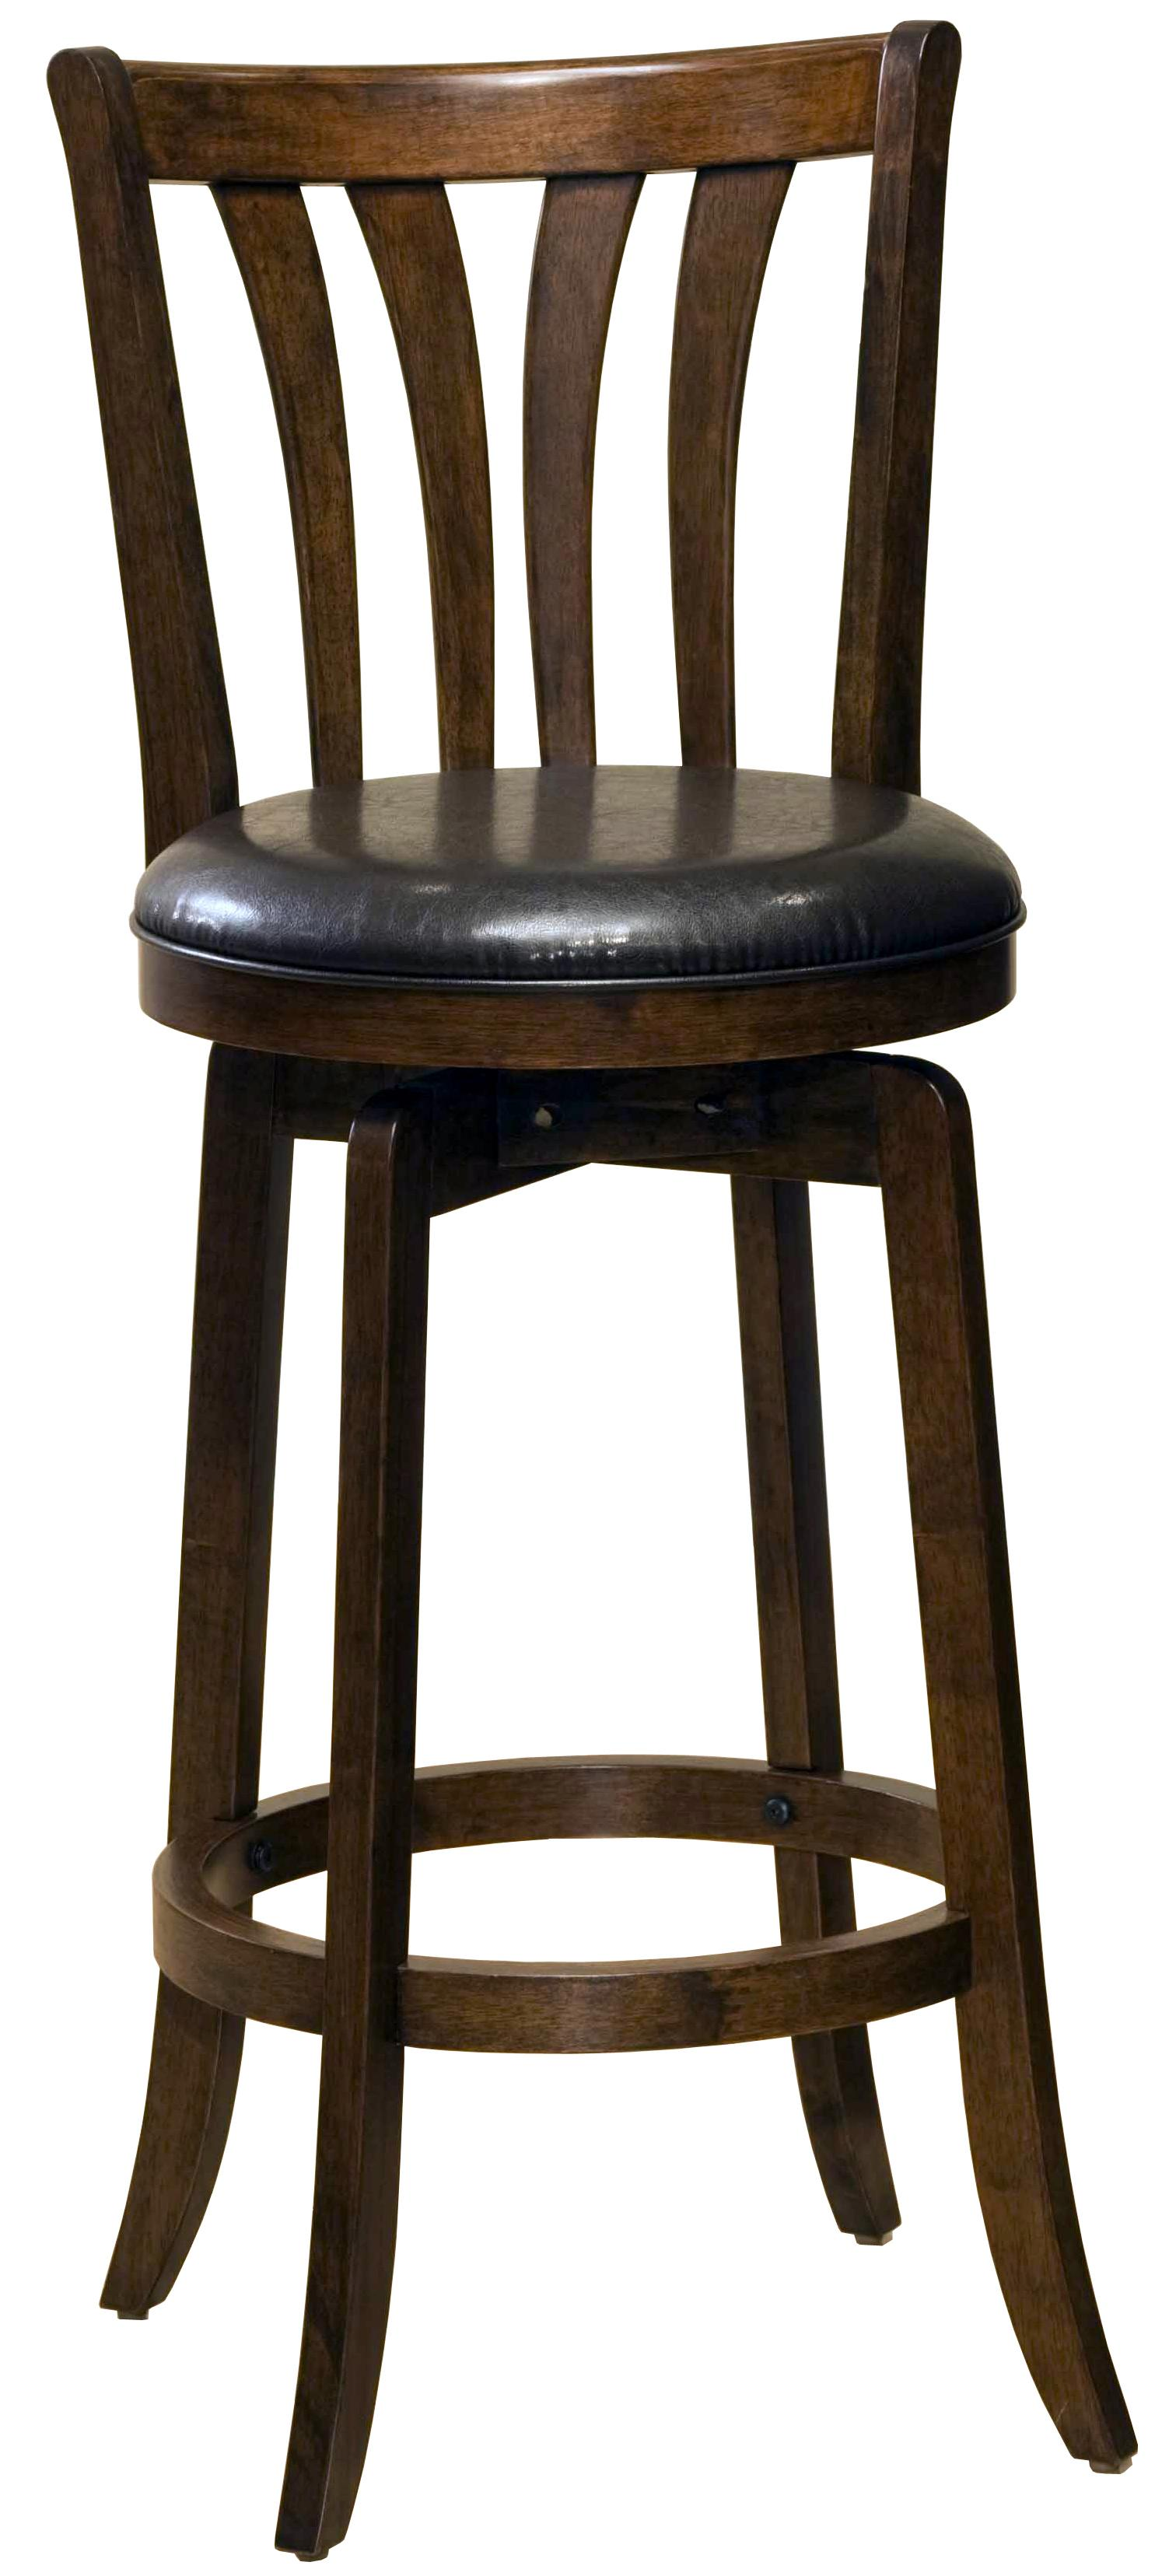 Wonderful image of 26 Counter Height Savana Swivel Bar Stool by Hillsdale Wolf and  with #63462E color and 1512x3312 pixels